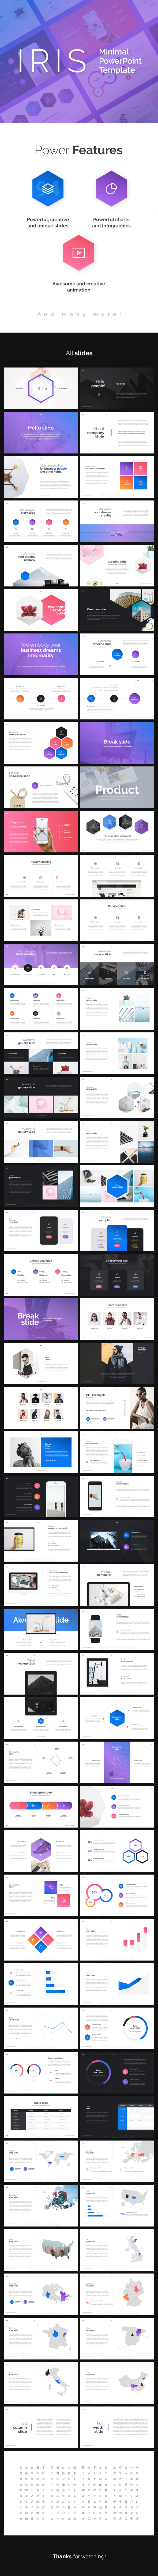 IRIS Minimal PowerPoint Presentation - Business PowerPoint Templates